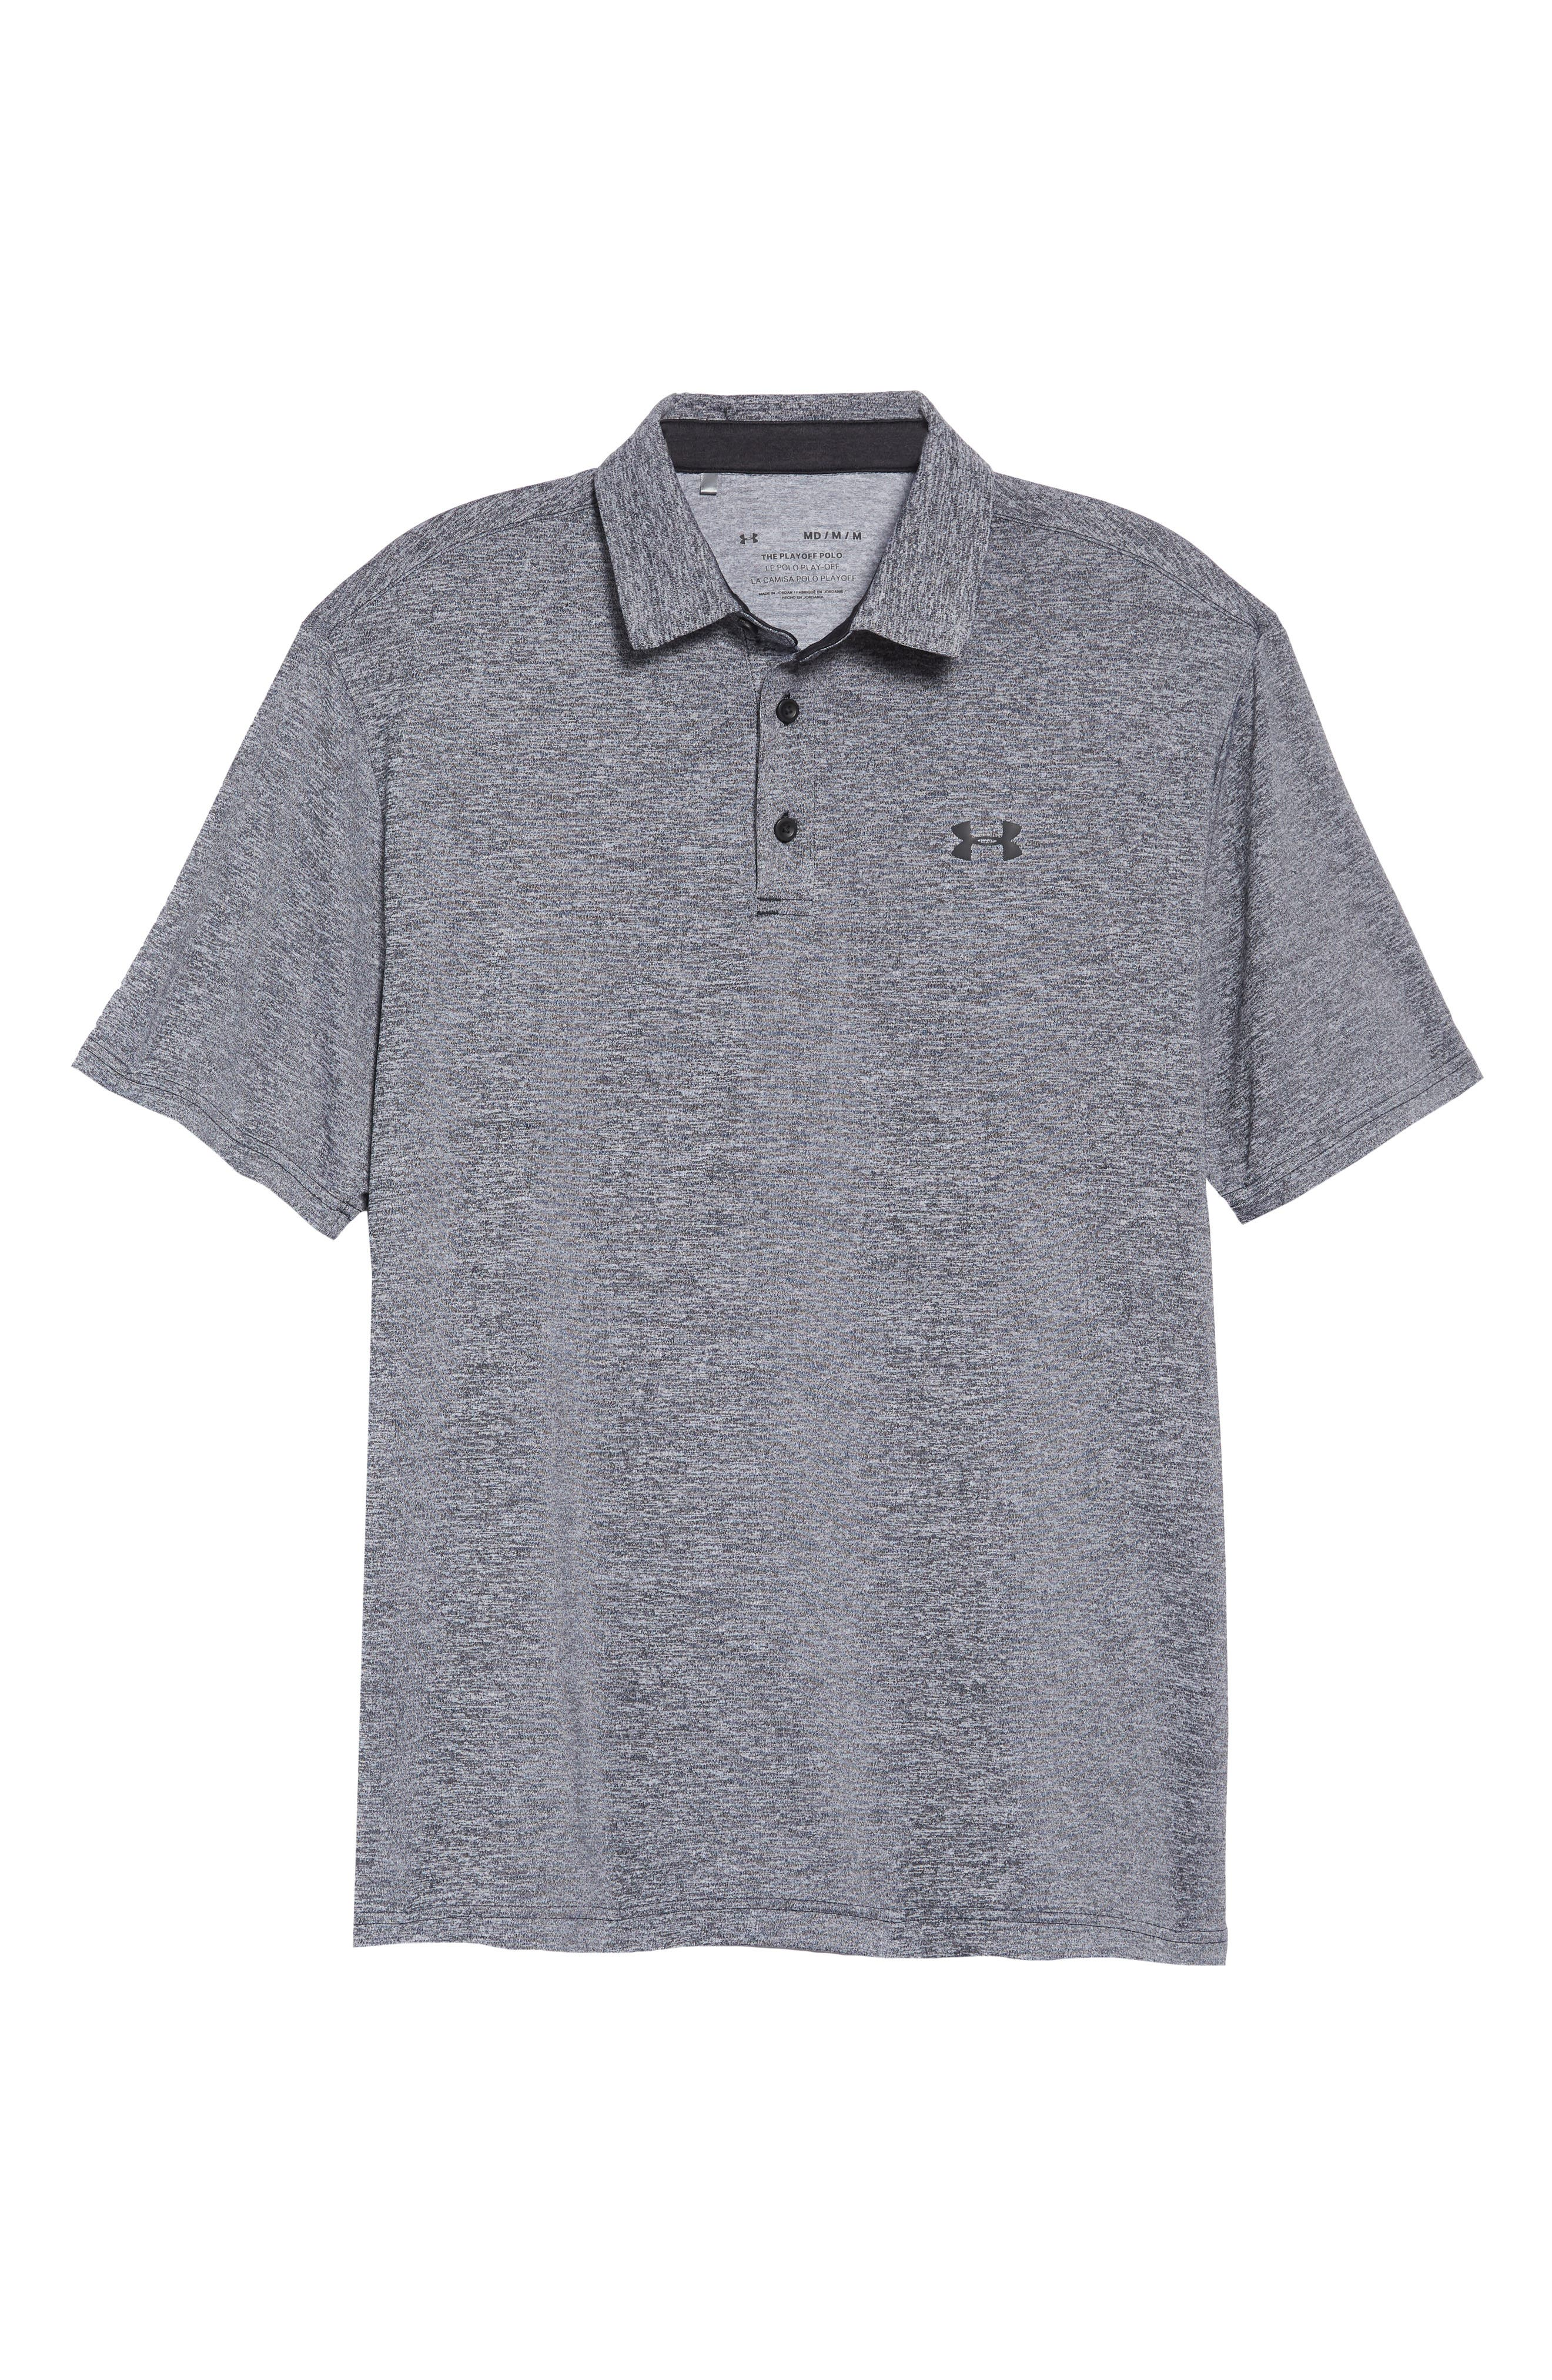 UNDER ARMOUR, Playoff 2.0 Loose Fit Polo, Alternate thumbnail 6, color, BLACK / BLACK / BLACK